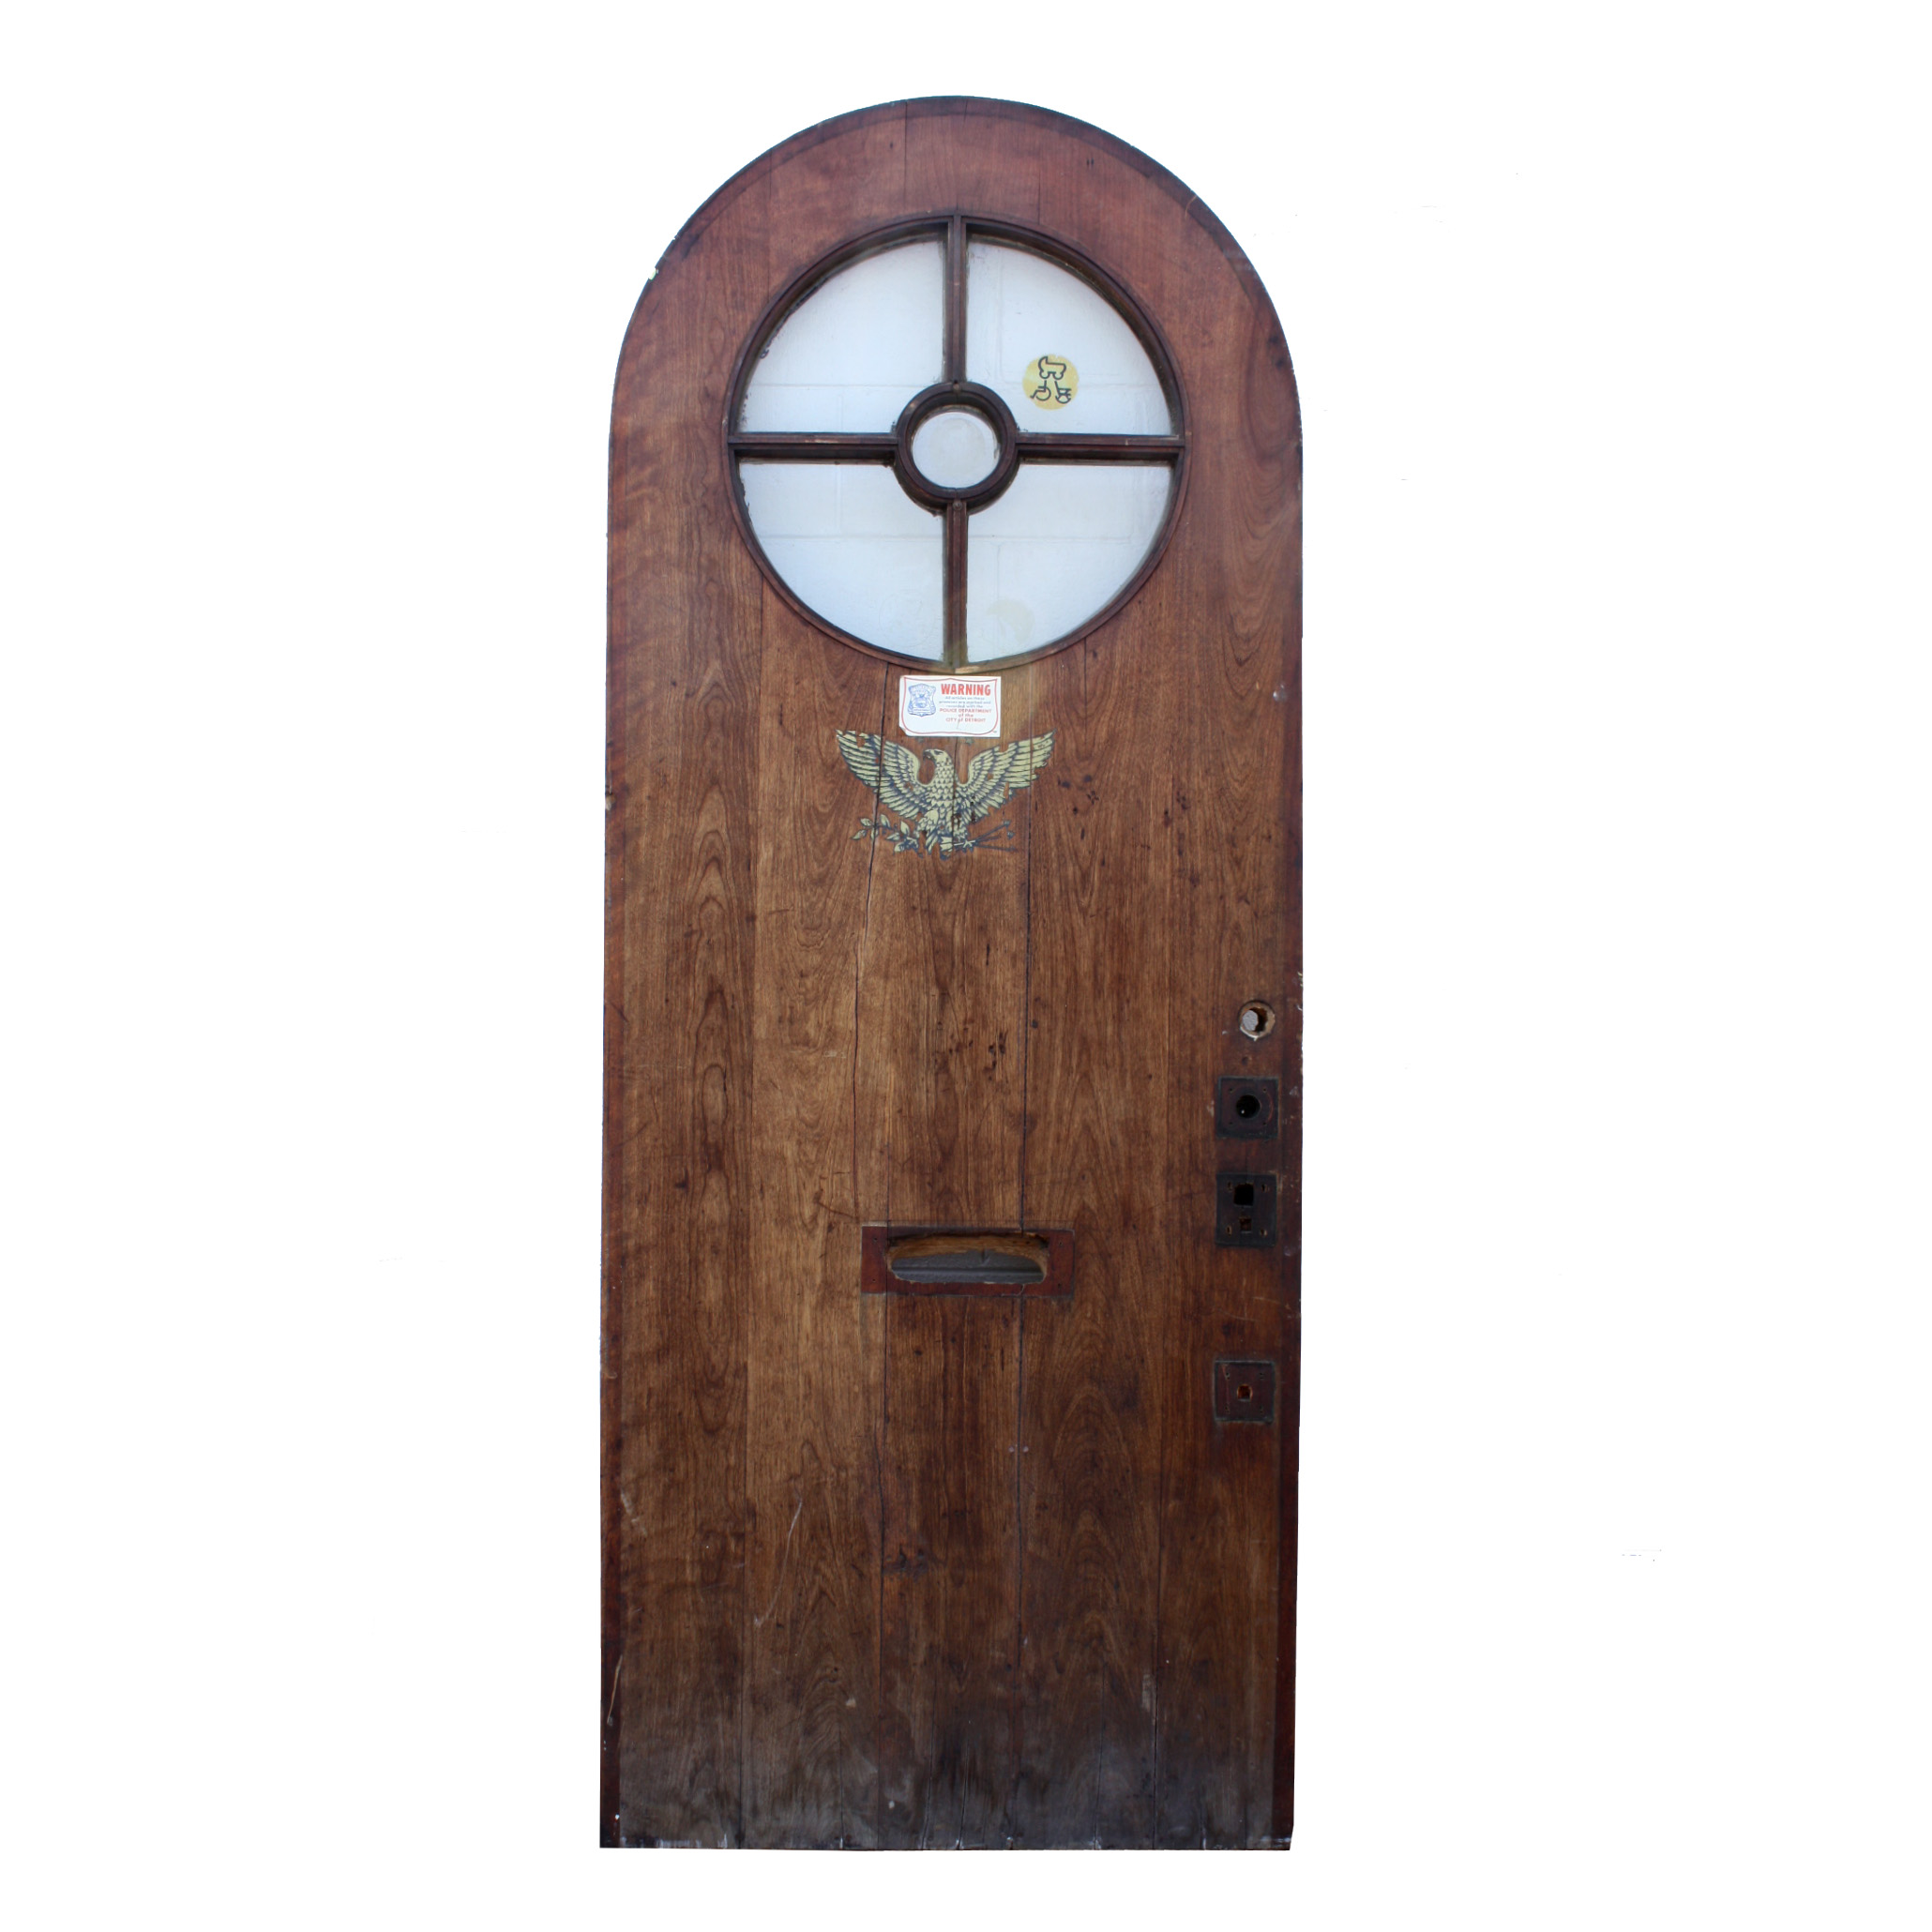 Salvaged 36 arched entrance door with round window and eagle ned171 for sale for Exterior door with round window